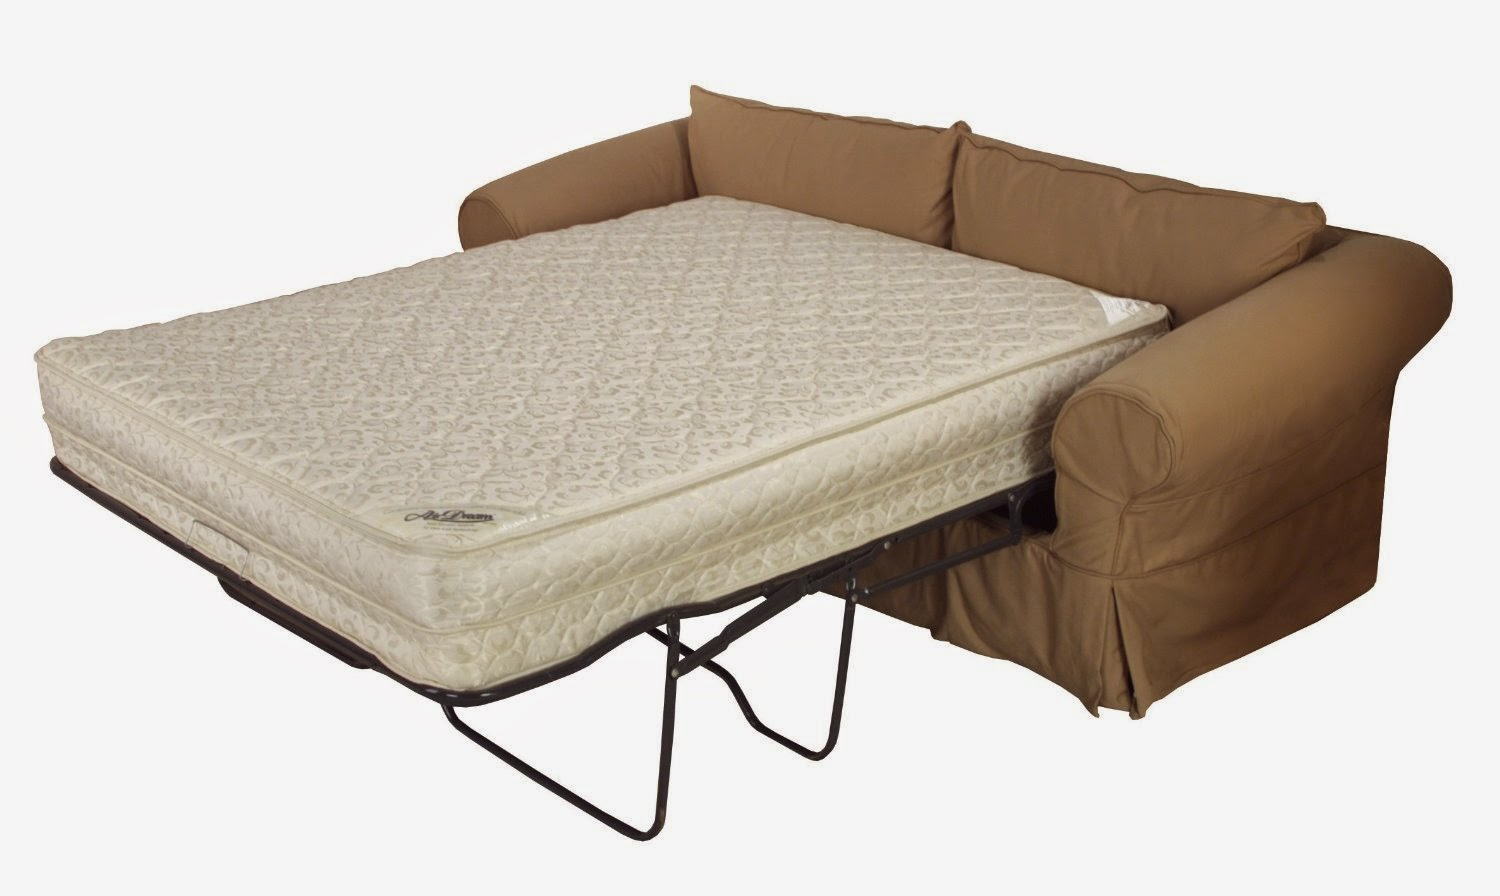 Pull out couch pull out couch mattress for Mattress for pull out sofa bed